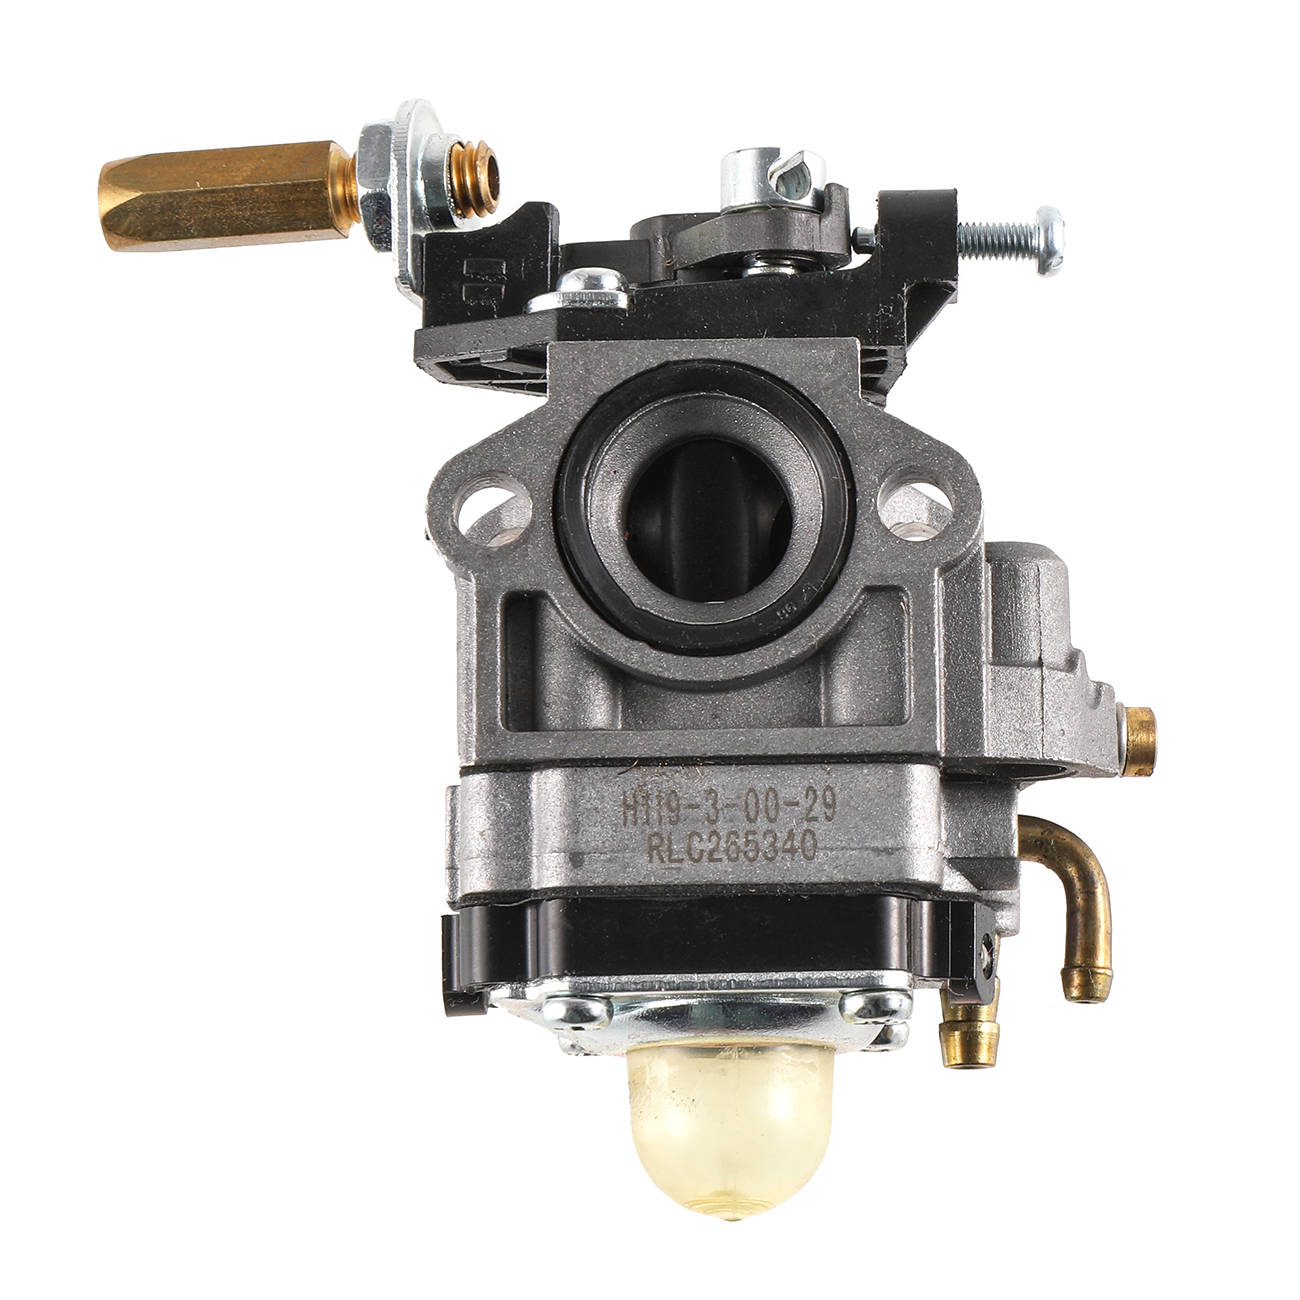 Carburetor Carb For Husqvarna 143RII Brushcutter Engine Parts Replace carb